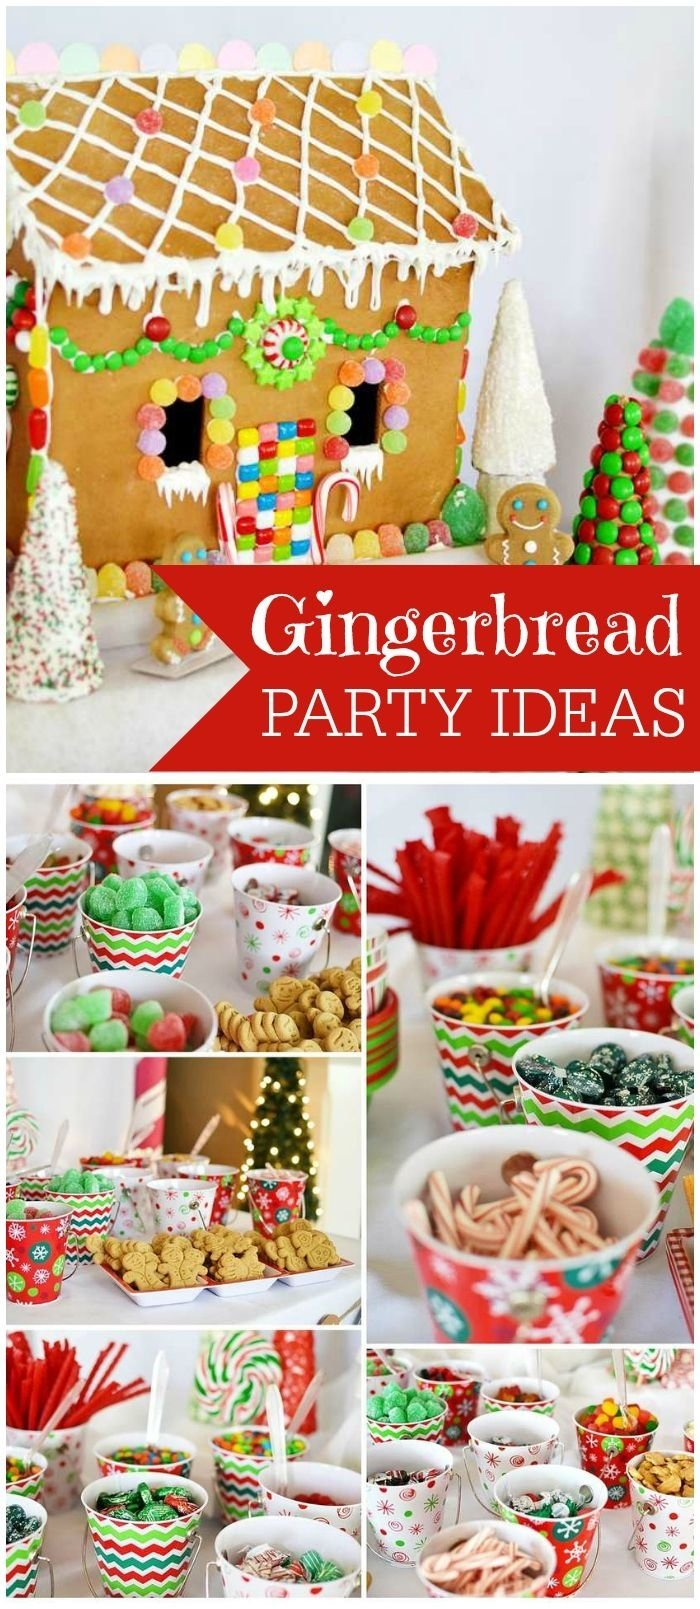 10 Fashionable Gingerbread House Decorating Party Ideas marvelous idea gingerbread house decorating party ideas outdoor fiture 2020